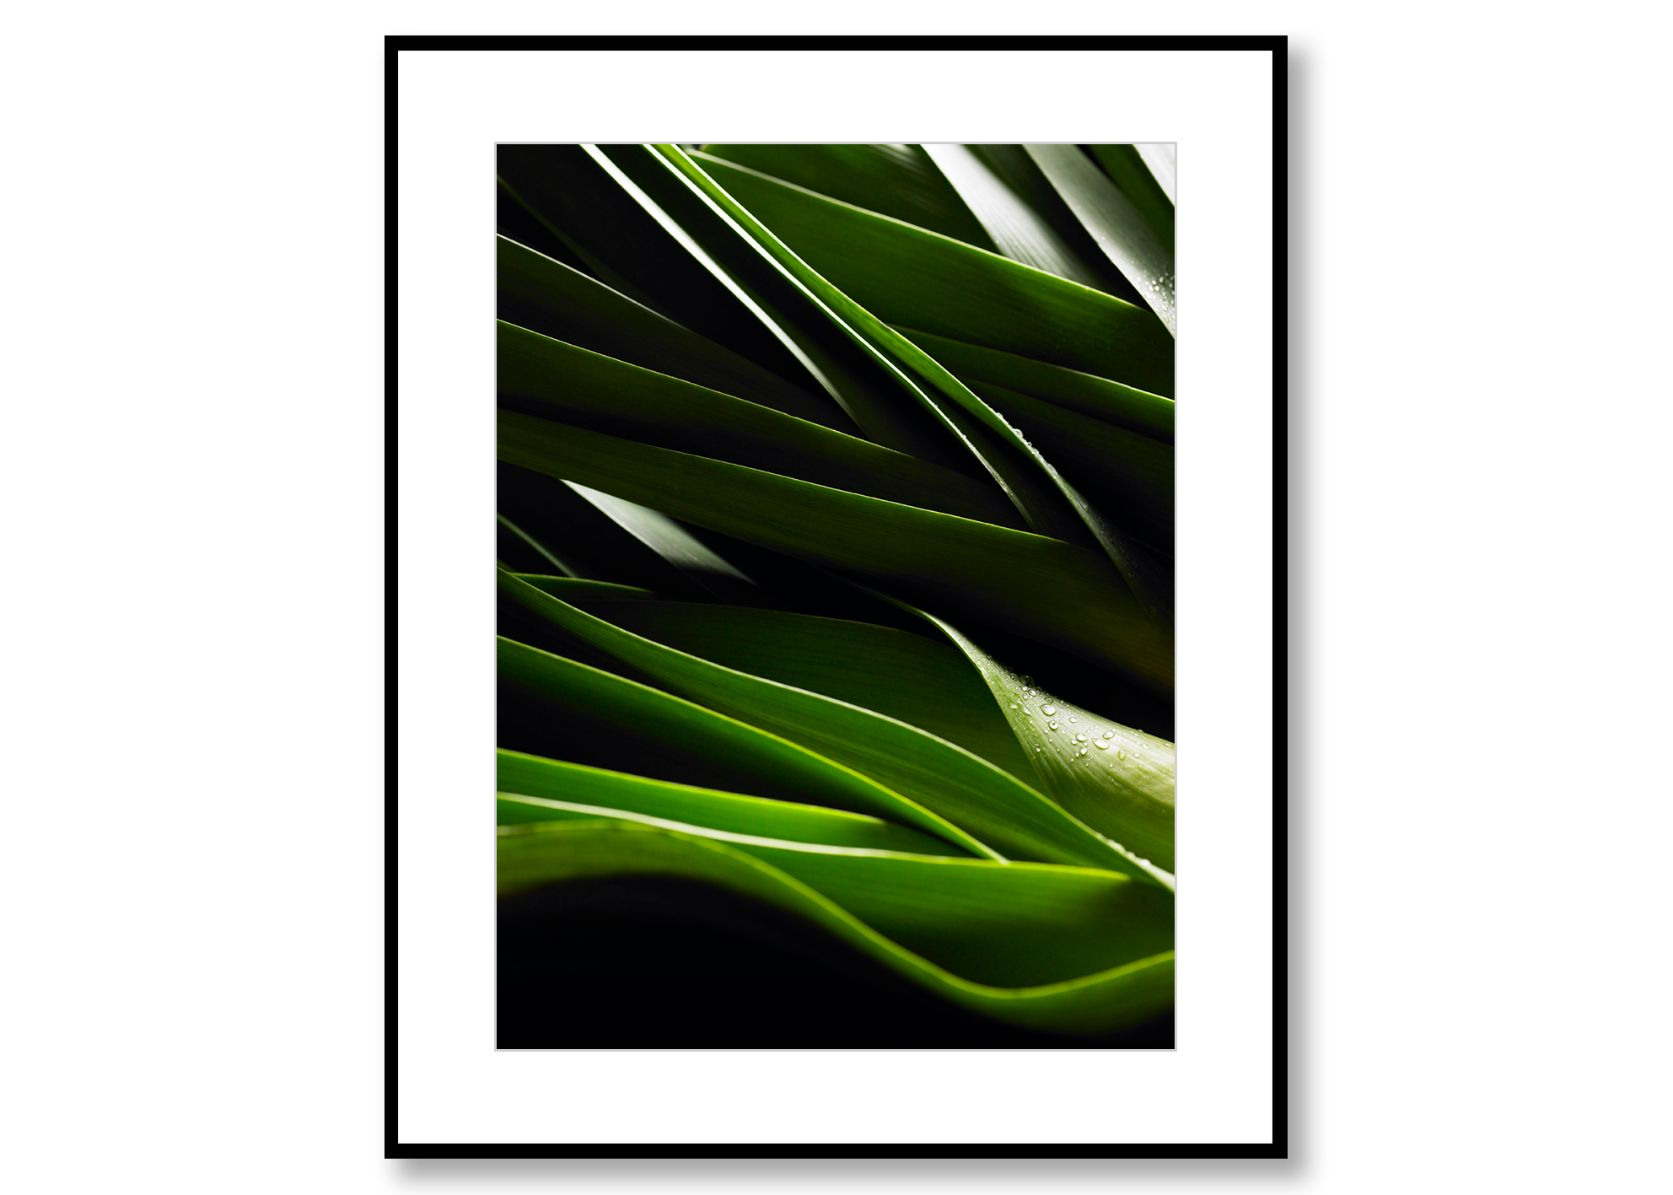 Leek. Food Art. Prints for sale. Photo by Fredrik Rege